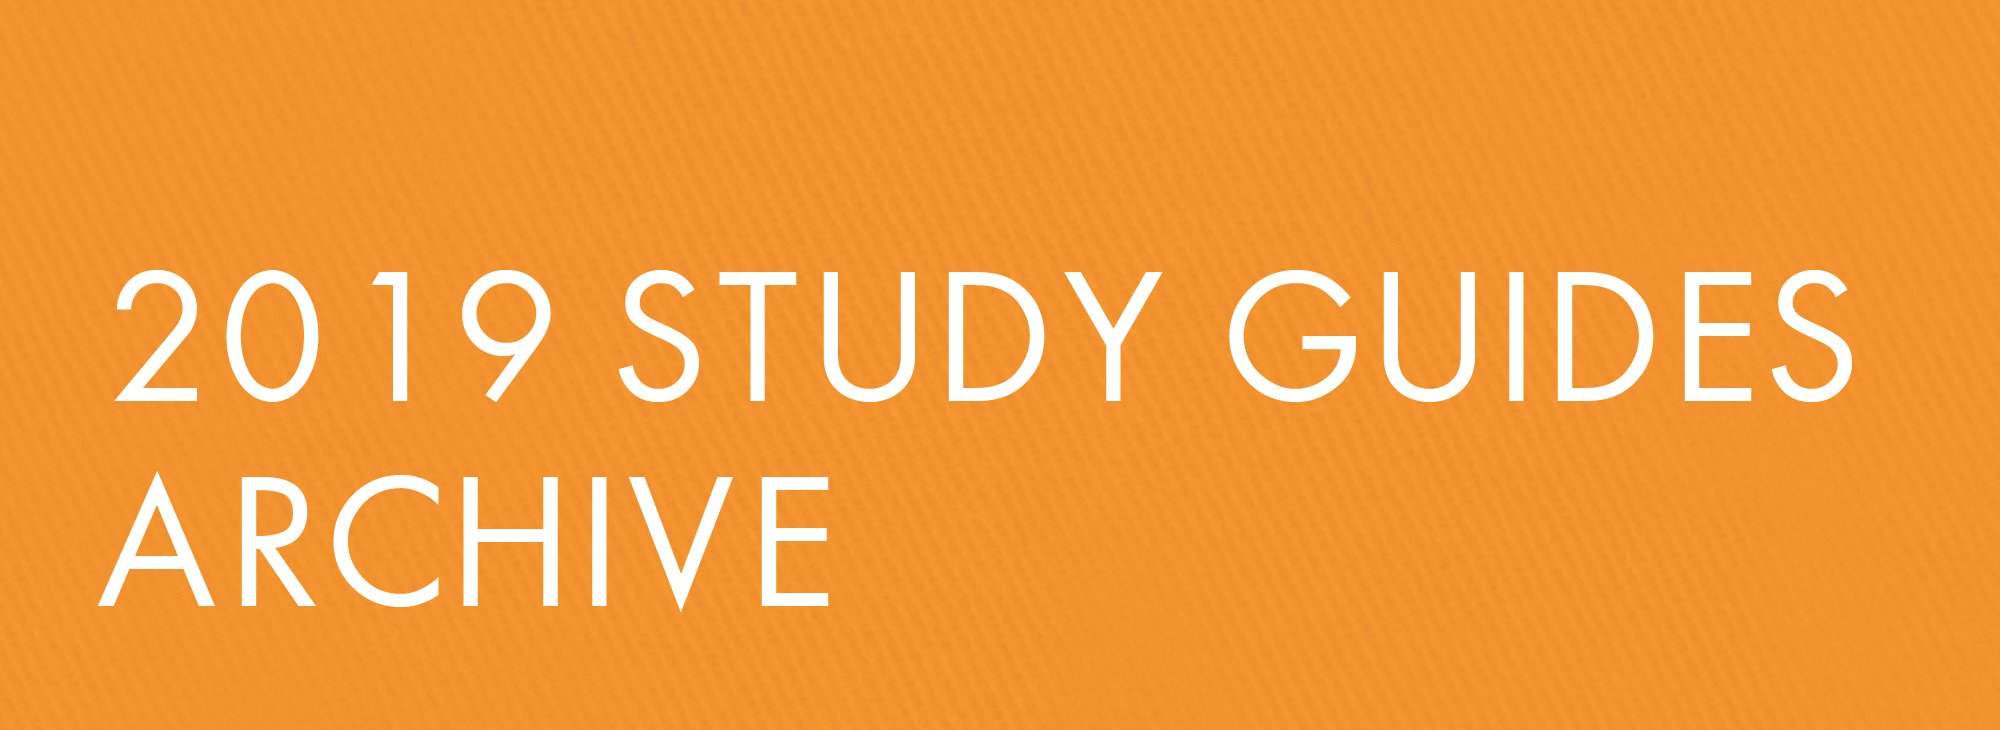 2019 Study Guide Archive